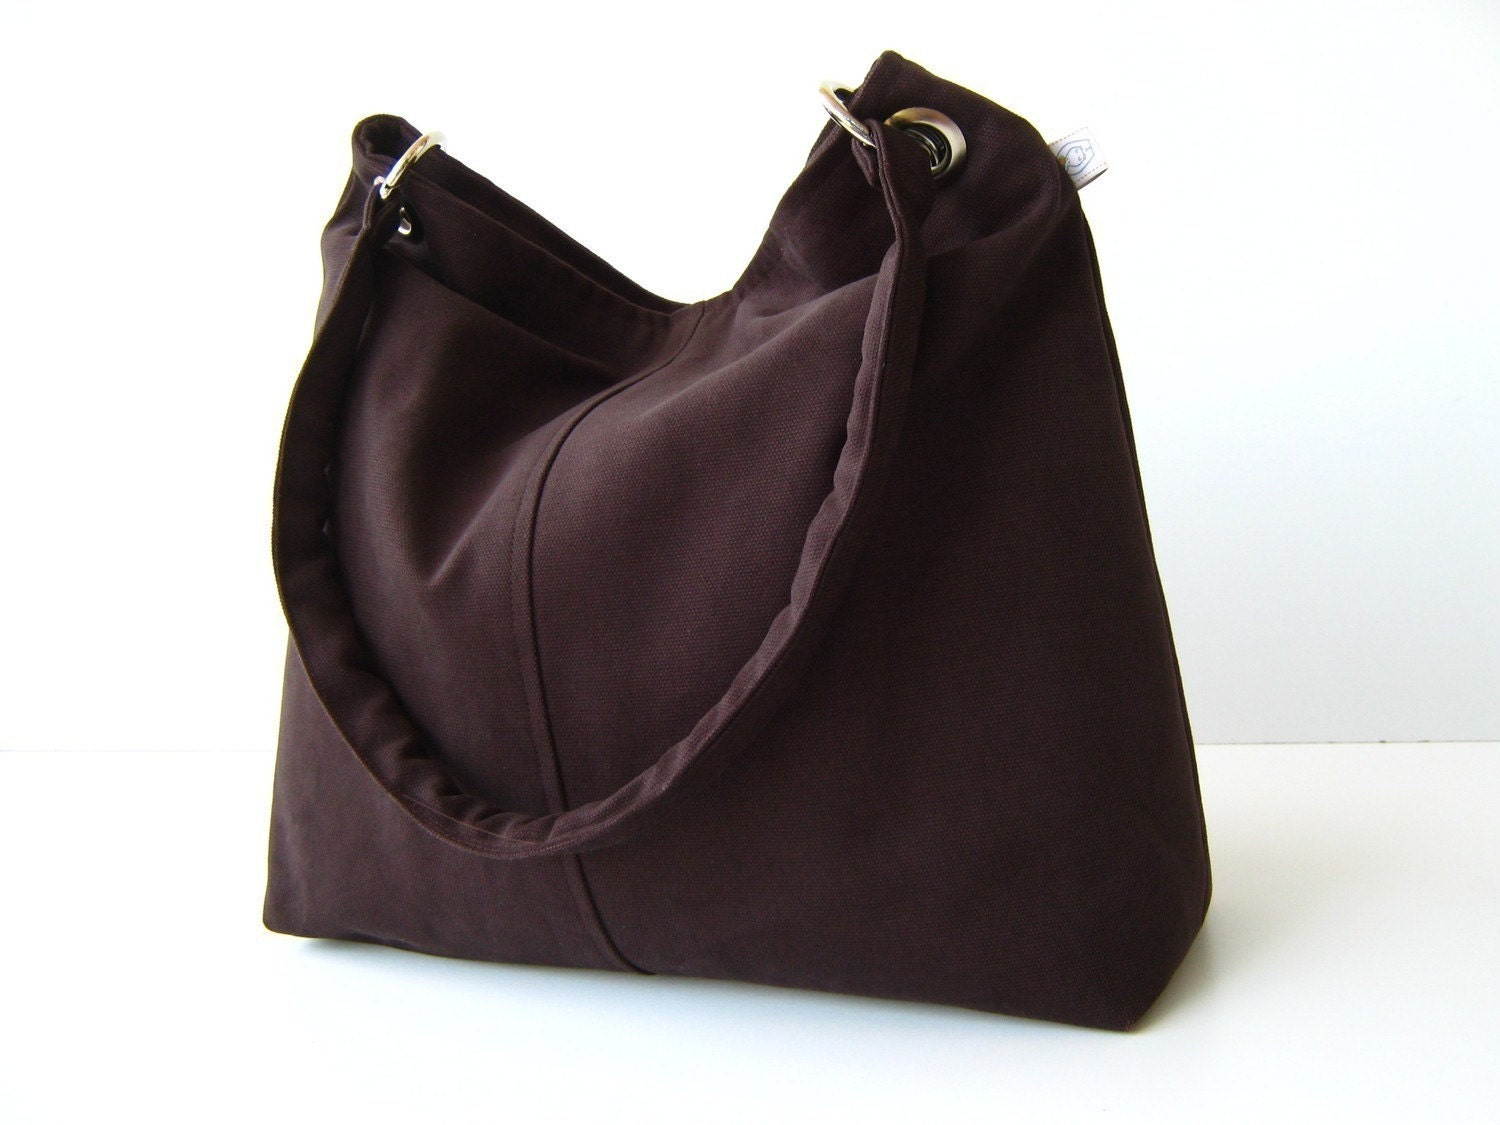 Classy Hobo Bag in Chocolate Brown - with top ZIPPER CLOSURE -- Large - bayanhippo